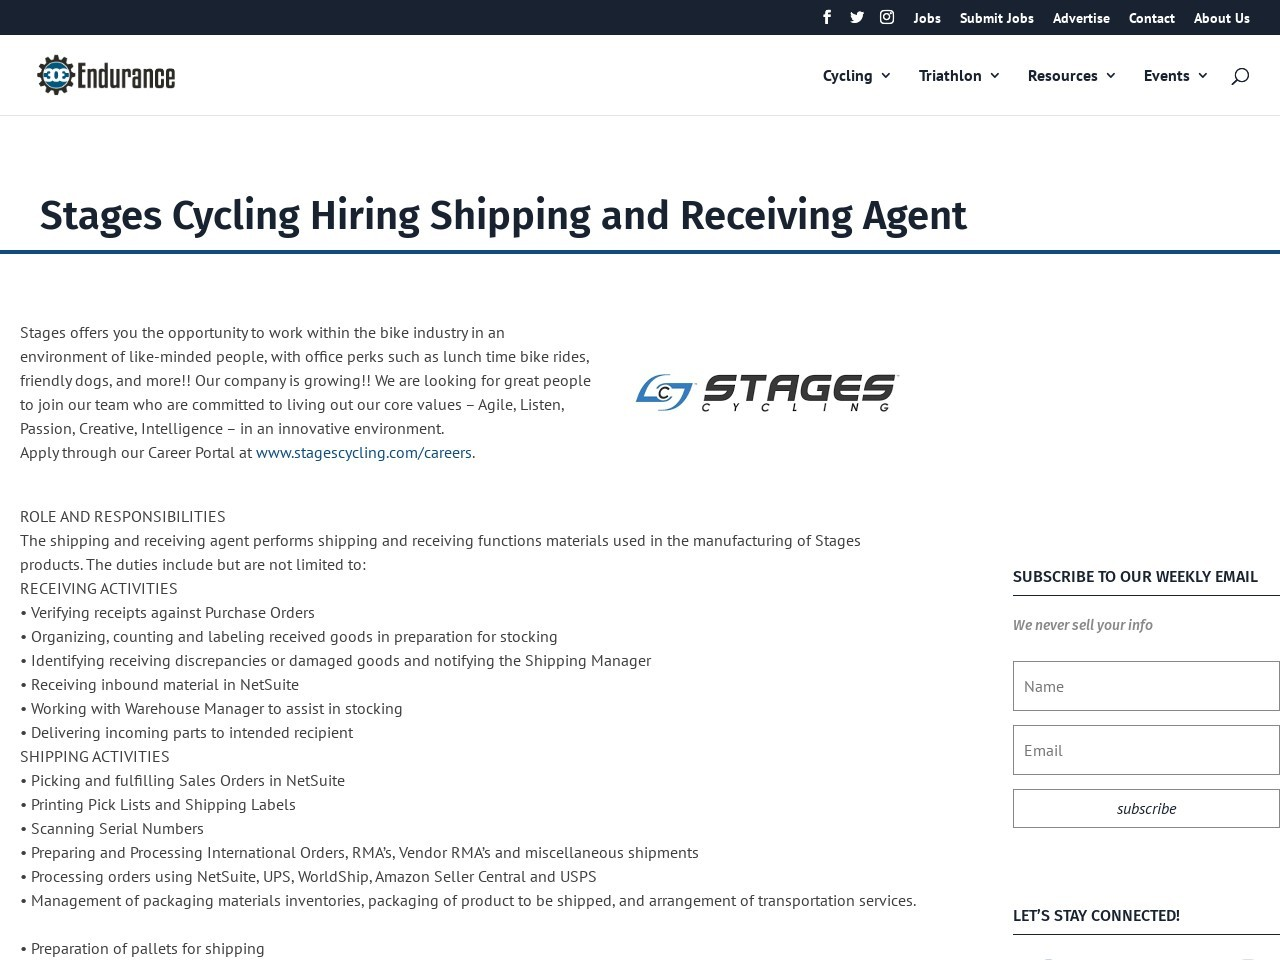 Stages Cycling Hiring Shipping and Receiving Agent